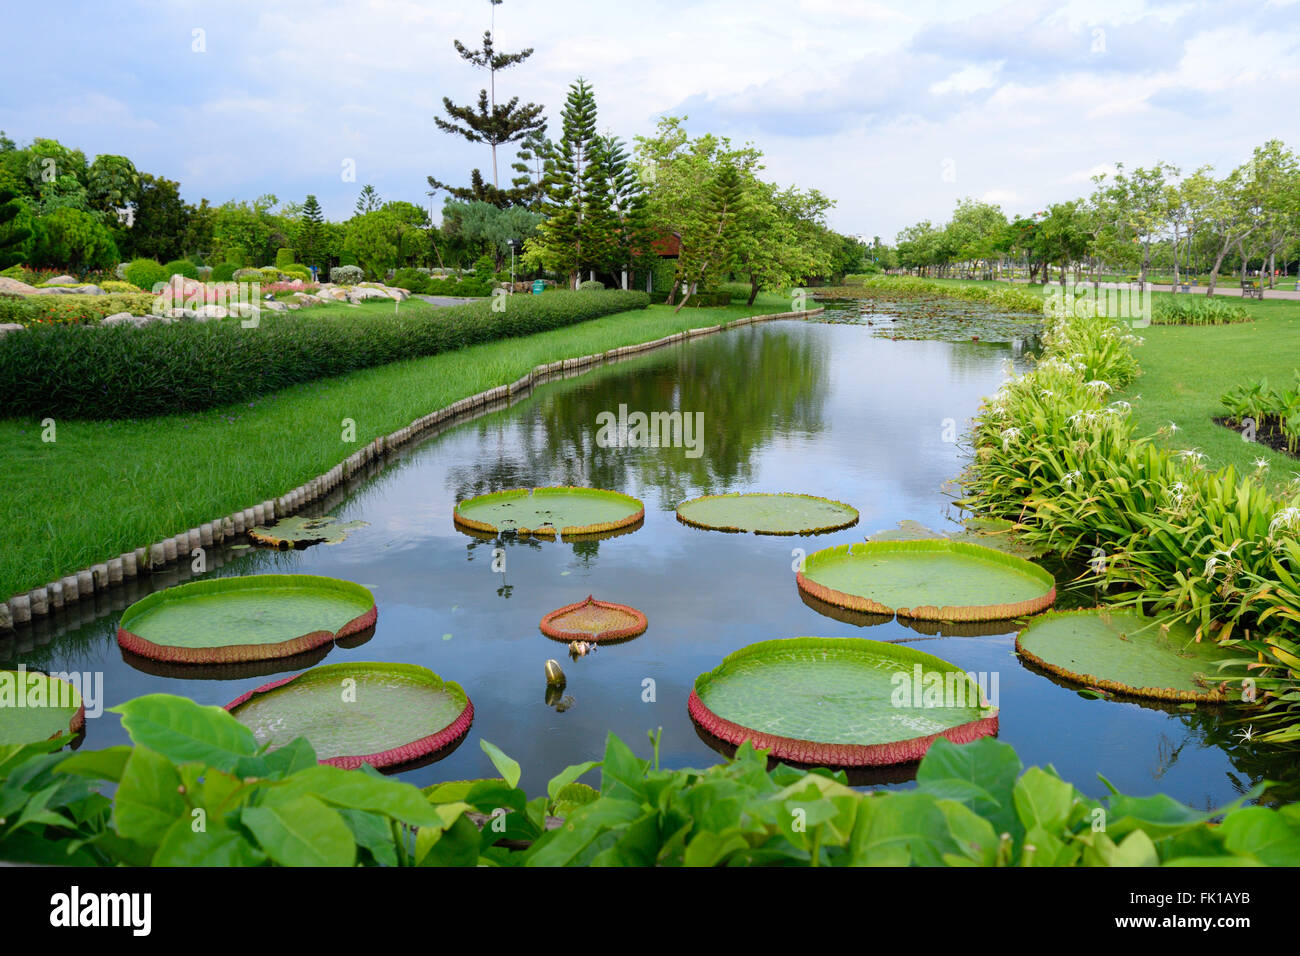 A River with large lilies in on a summer's day, King's park, Bangkok Stock Photo